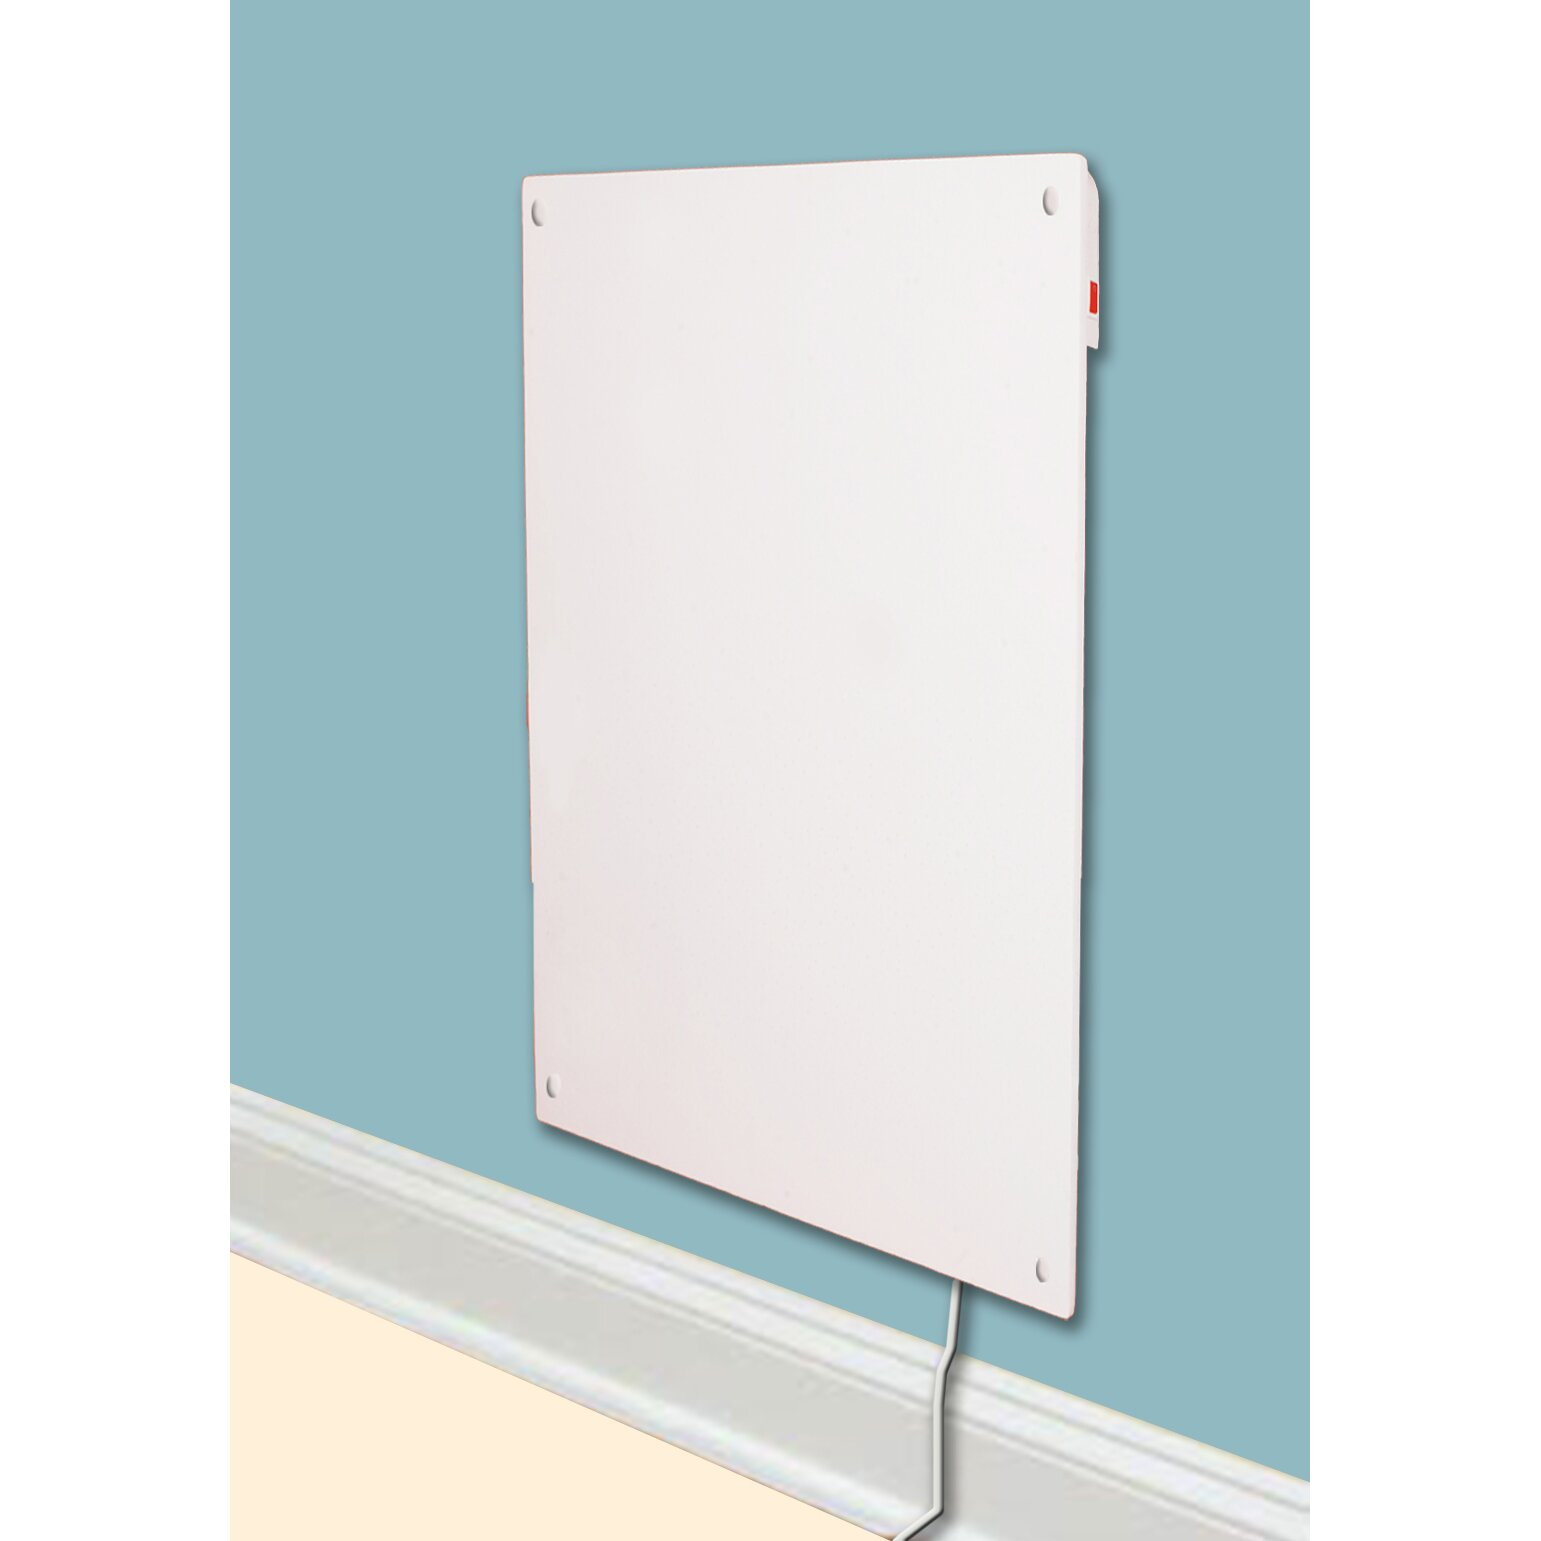 Wall Mounted Electric Convection Panel Heater by Cozy-Heater LLC